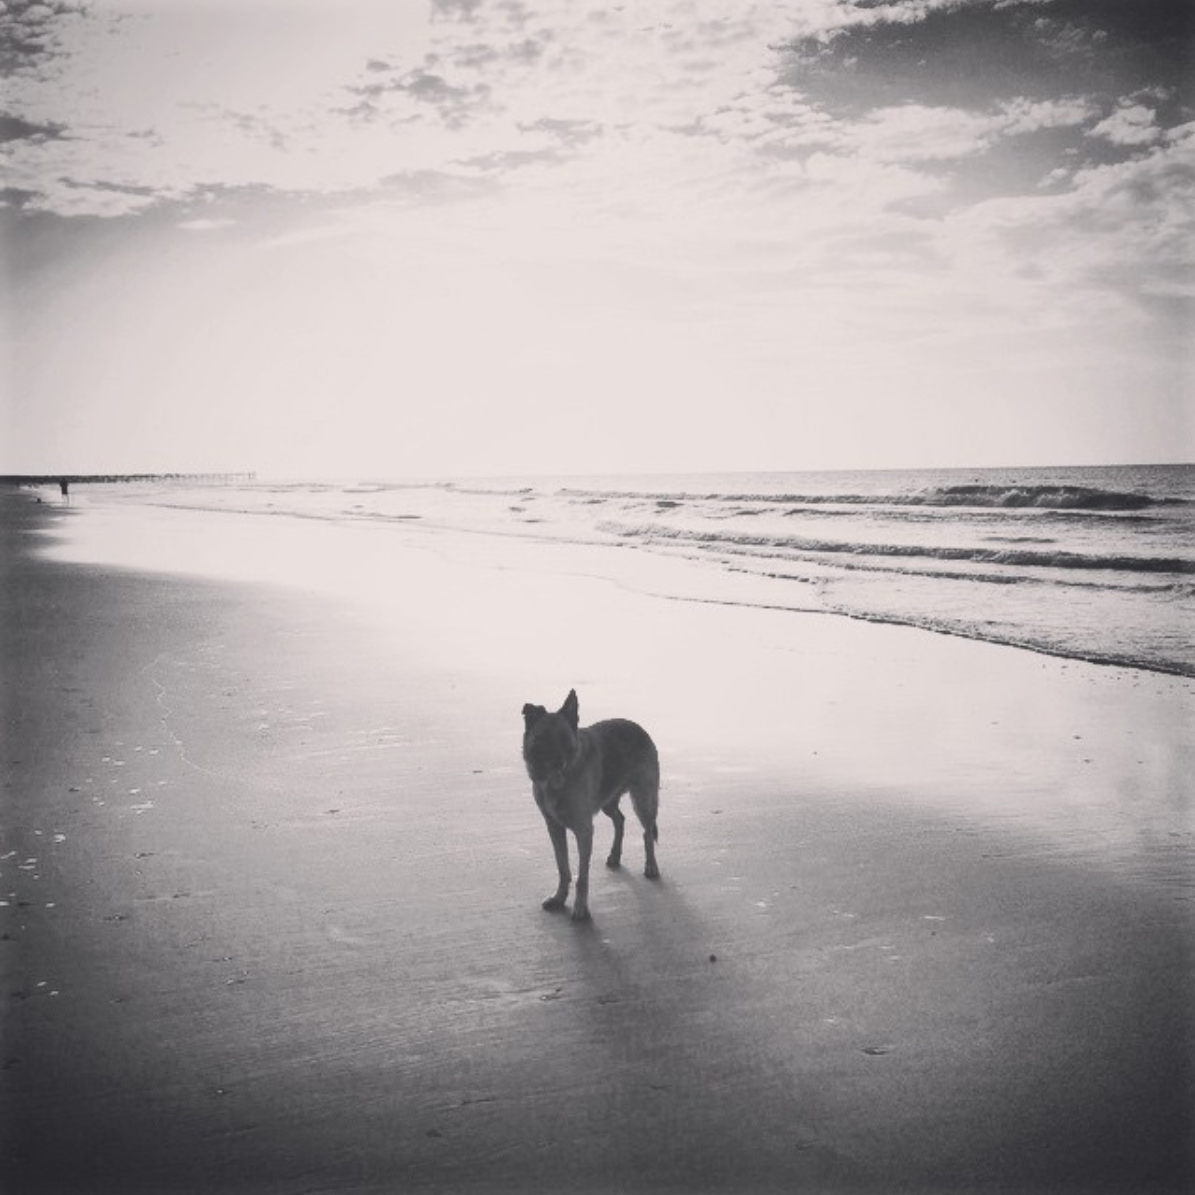 Instagram image of dog standing in ocean